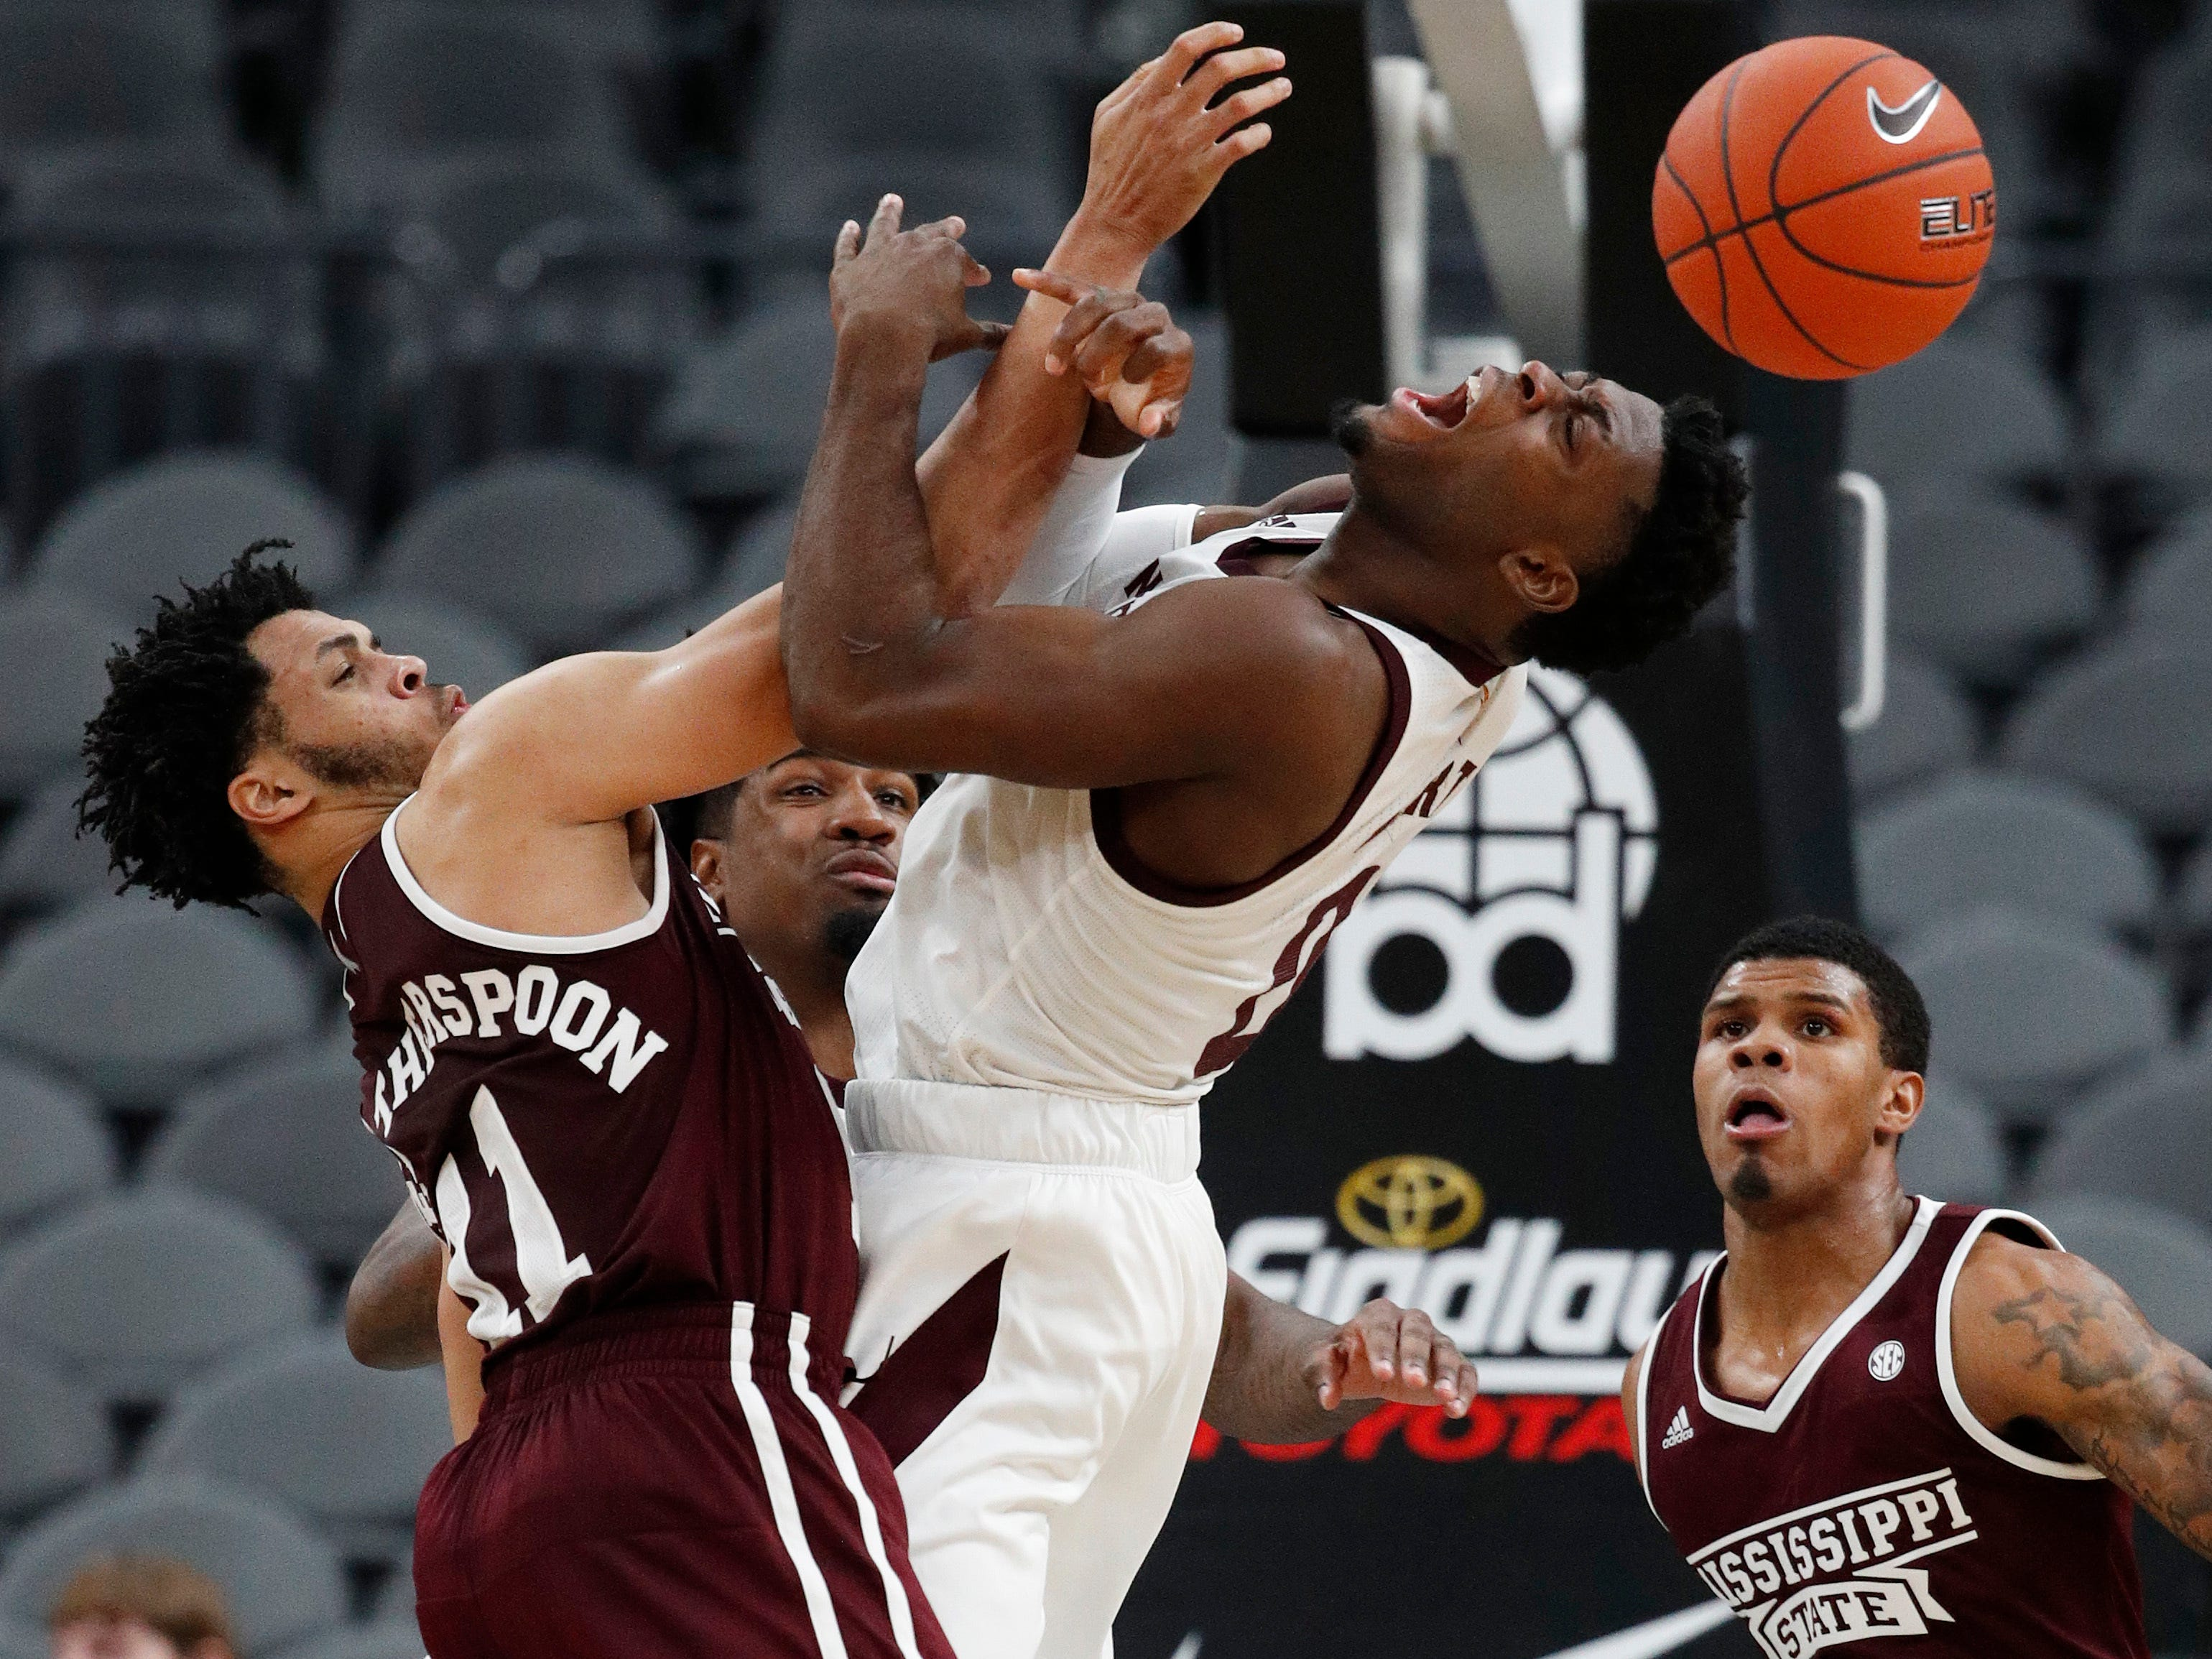 Mississippi State's Quinndary Weatherspoon (11) and Arizona State's Luguentz Dort (0) vie for the ball during the second half of an NCAA college basketball game, Monday, Nov. 19, 2018, in Las Vegas. Arizona State won 72-67.